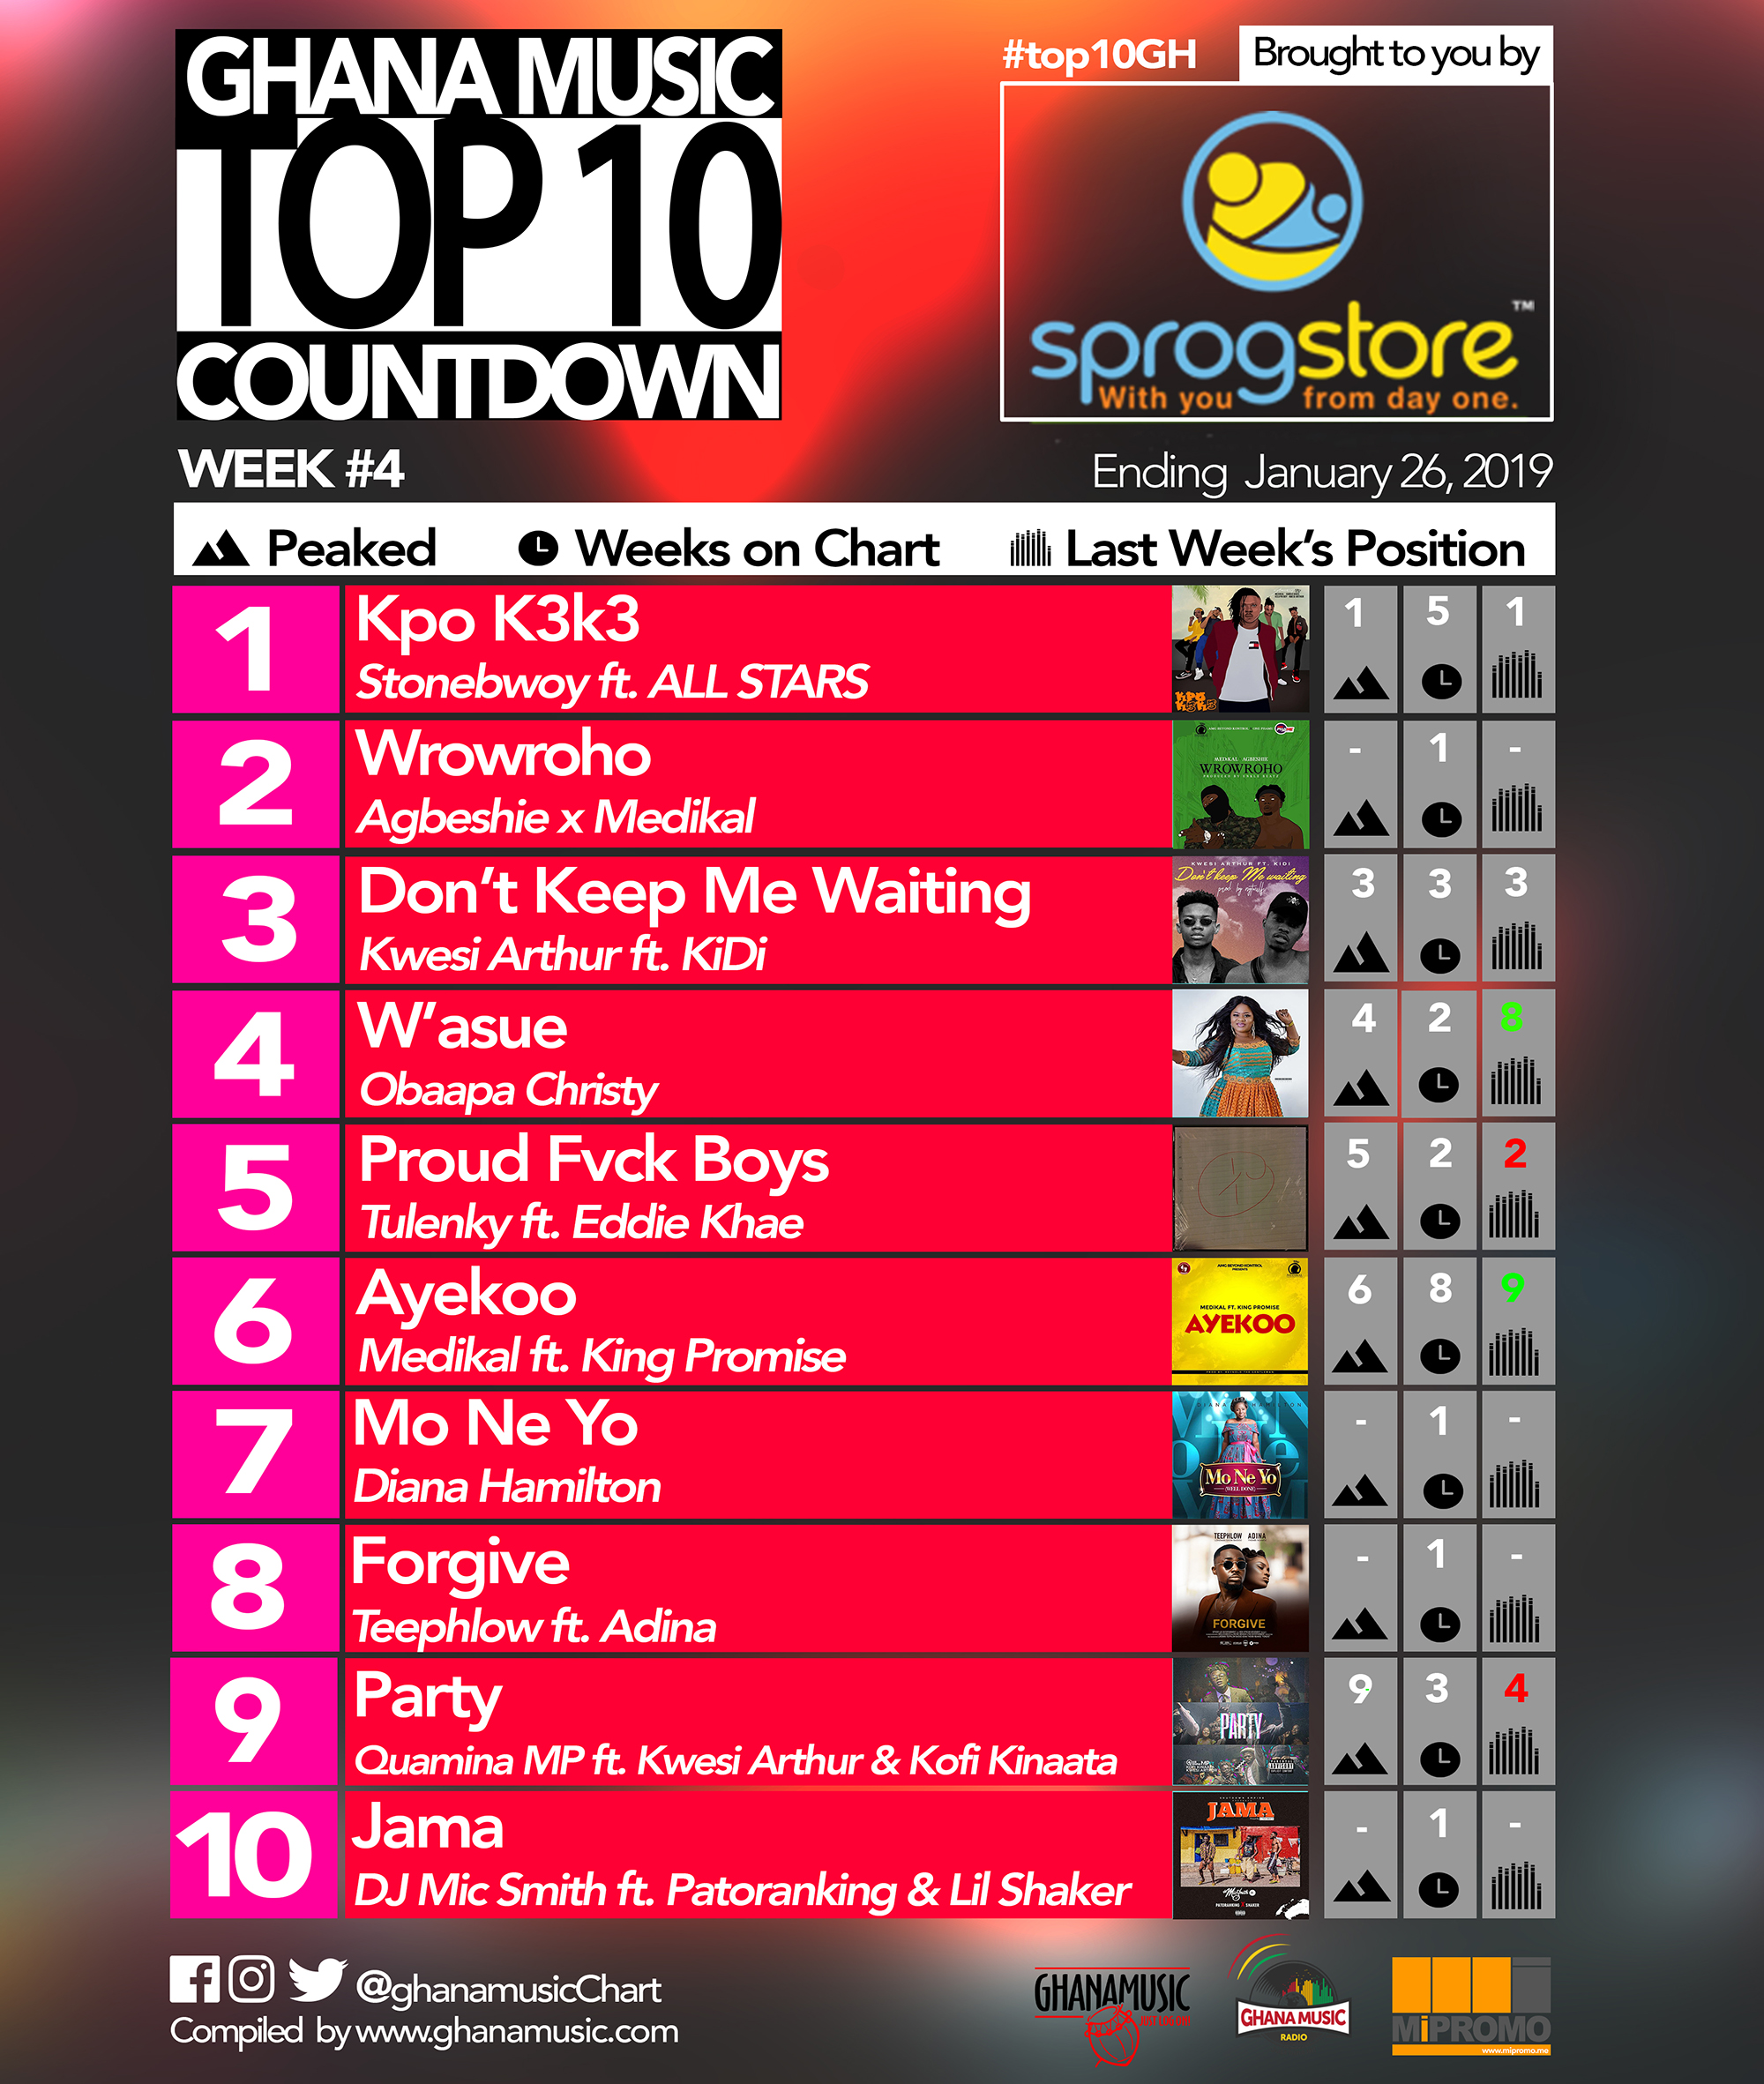 Week #4: Ghana Music Top 10 Countdown